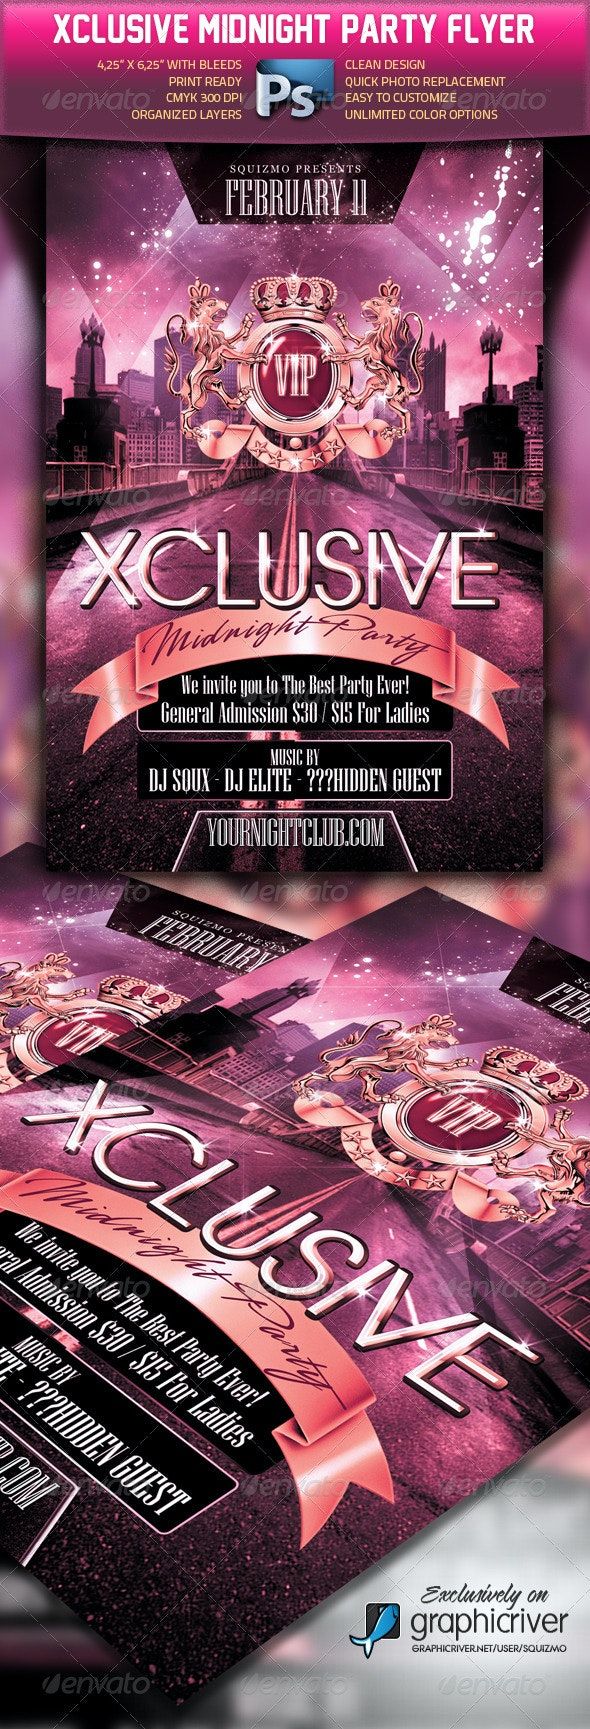 Xclusive Midnight Party Flyer - Clubs & Parties Events